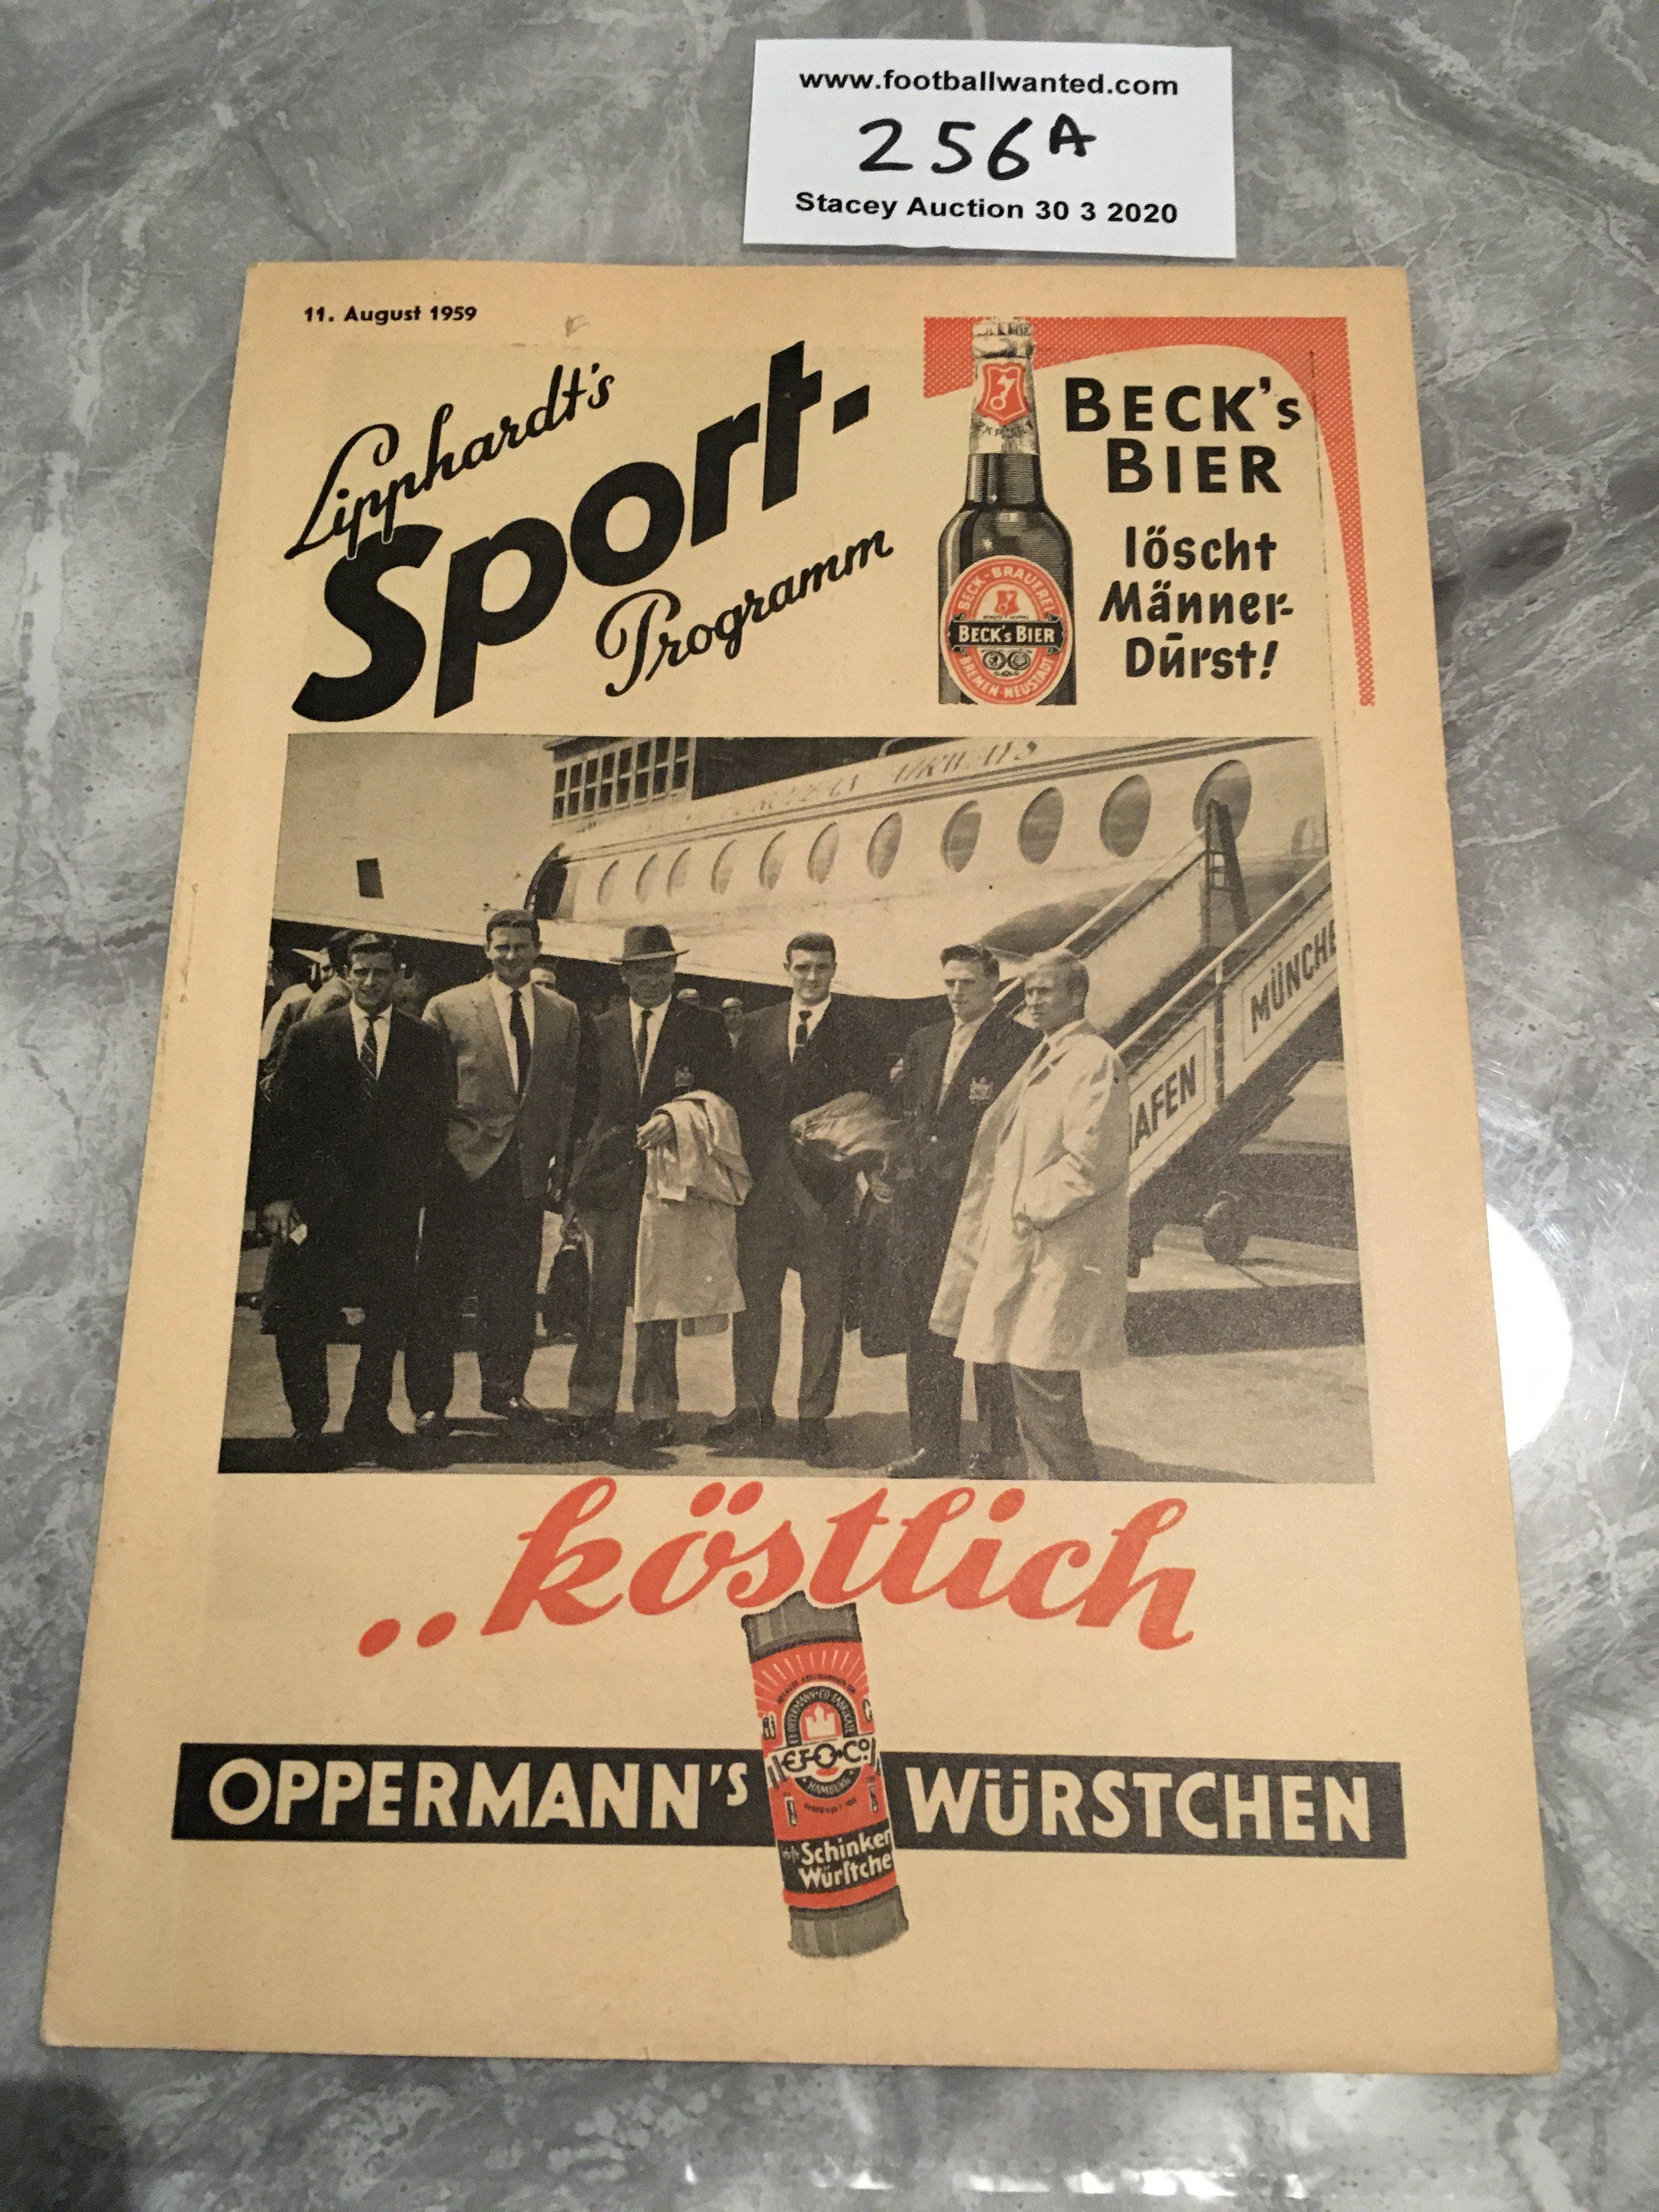 Lot 256A - 59/60 Hamburg v Manchester United Football Programme: Excellent condition dated 11 8 1959 with no